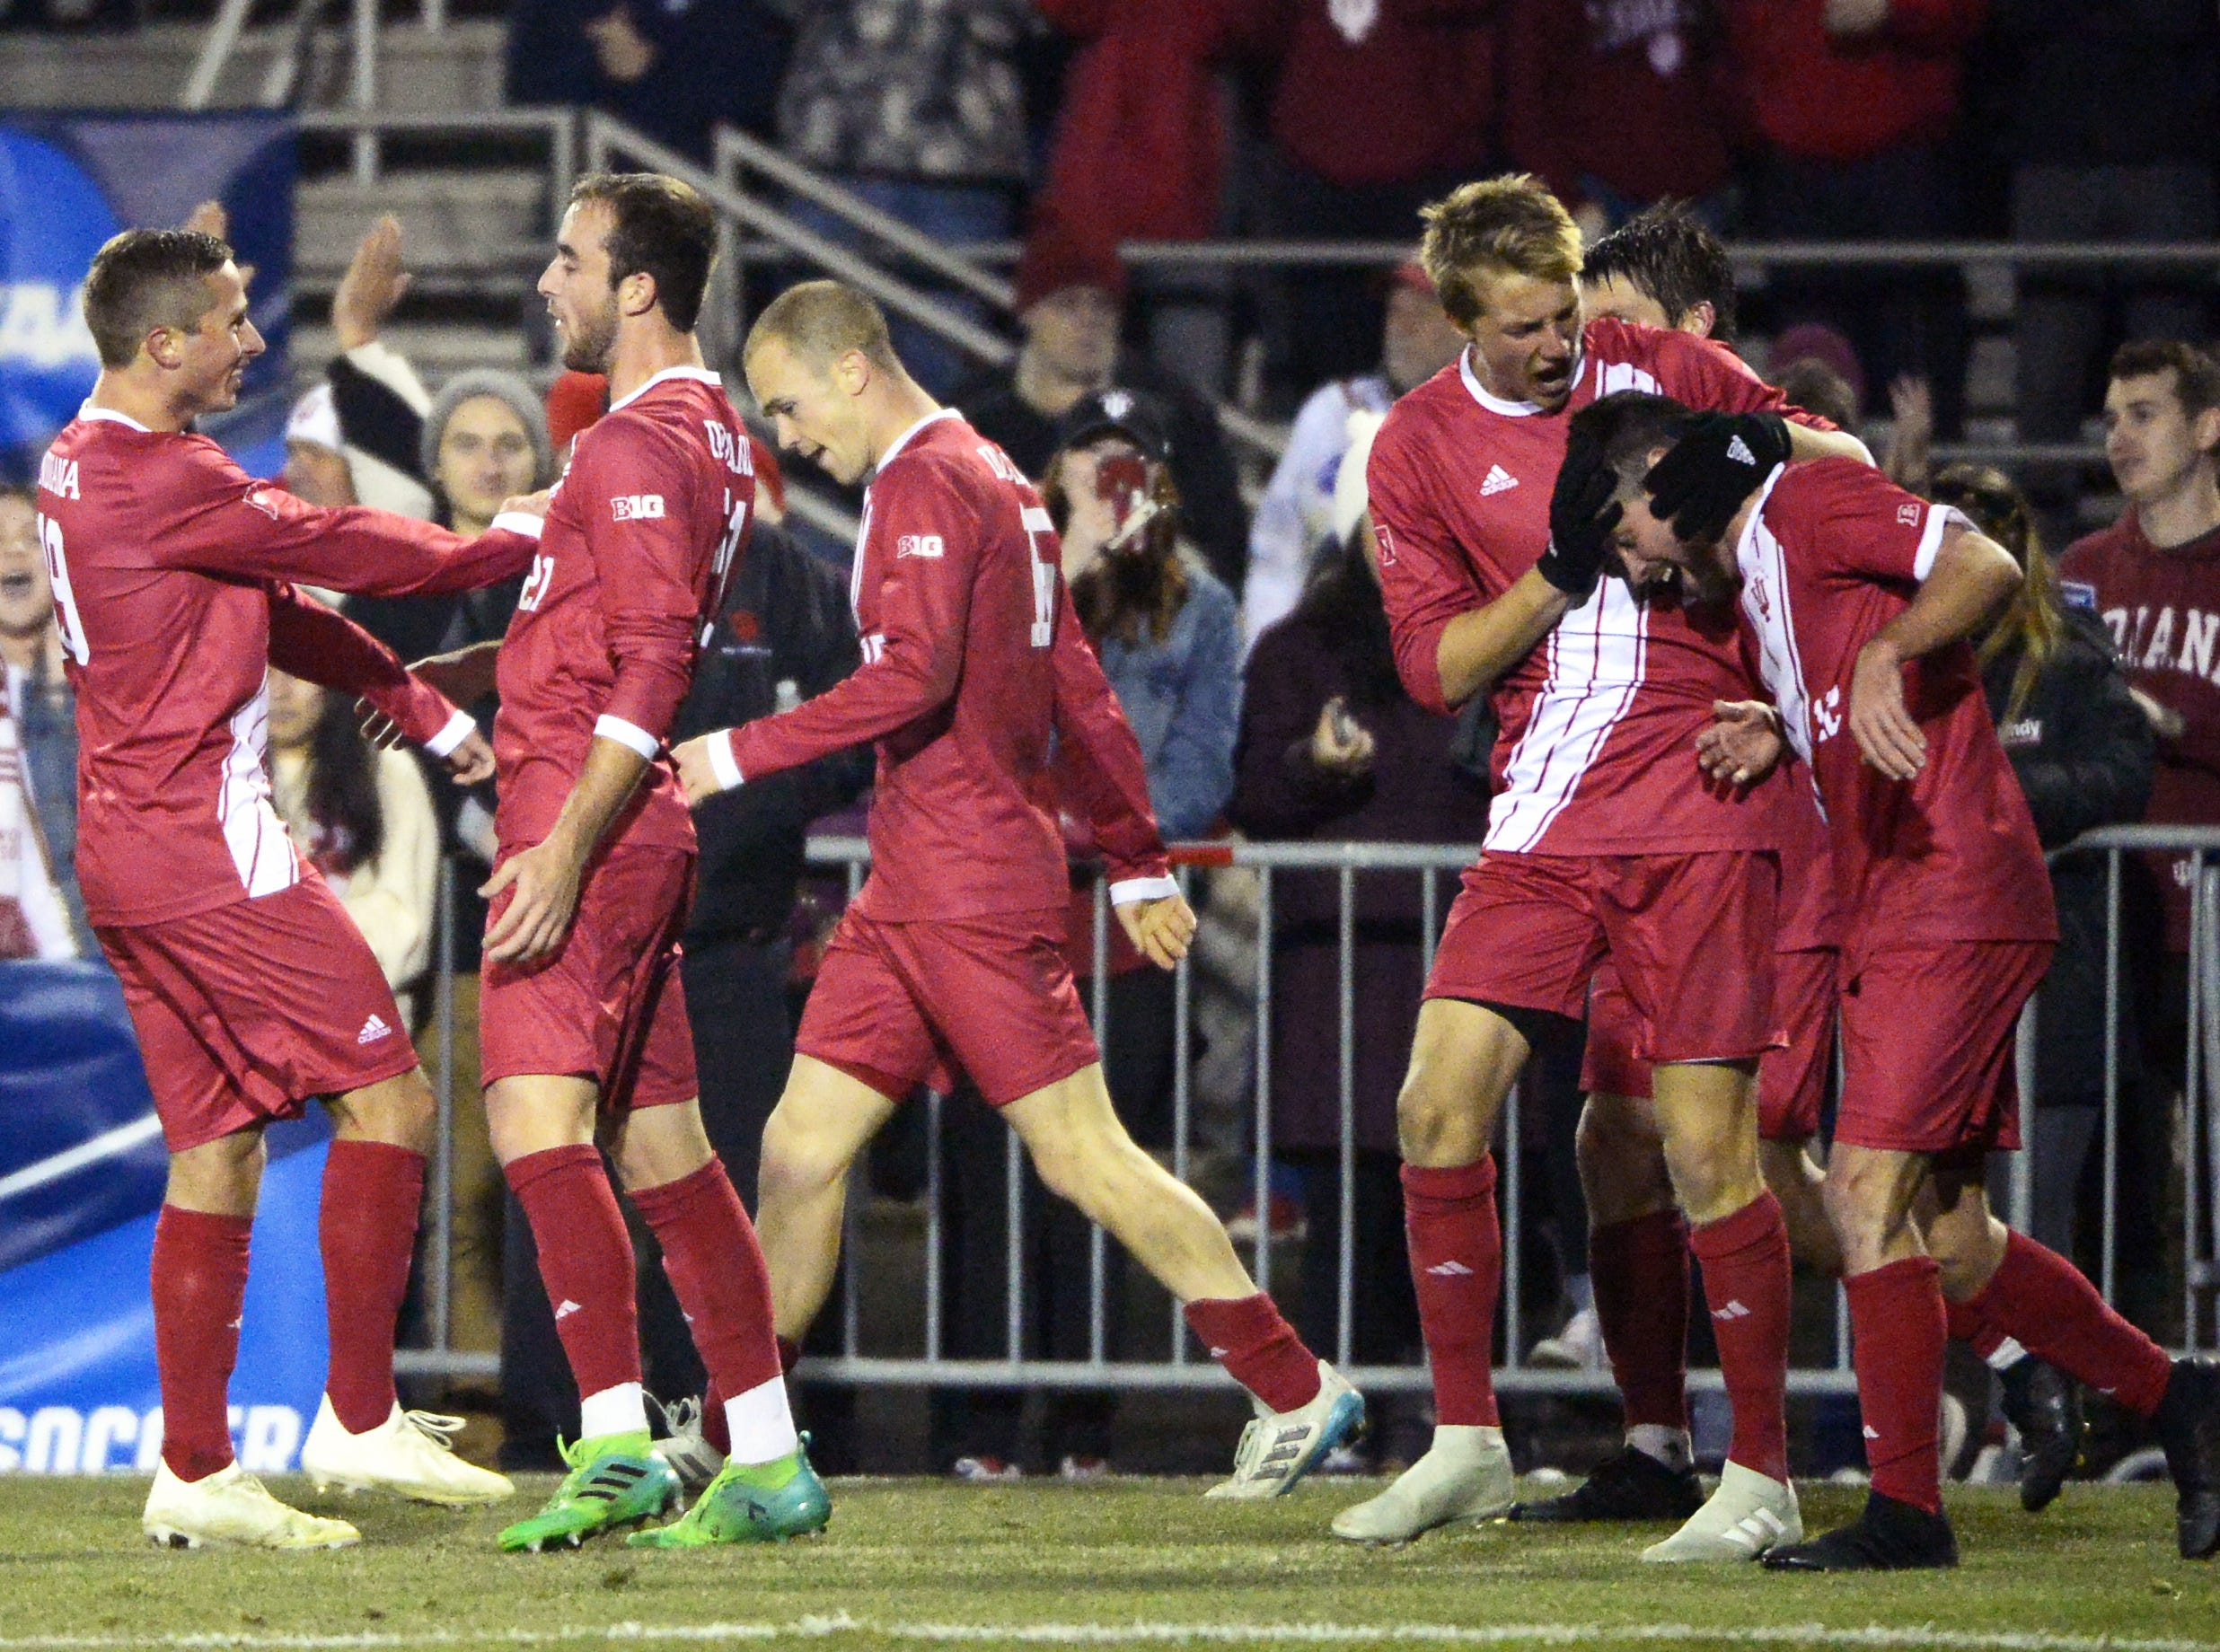 The Indiana Hoosiers celebrate after scoring a goal during the NCAA quarterfinal match against Notre Dame at Bill Armstrong Stadium in Bloomington Ind., on Friday, Nov. 30, 2018.